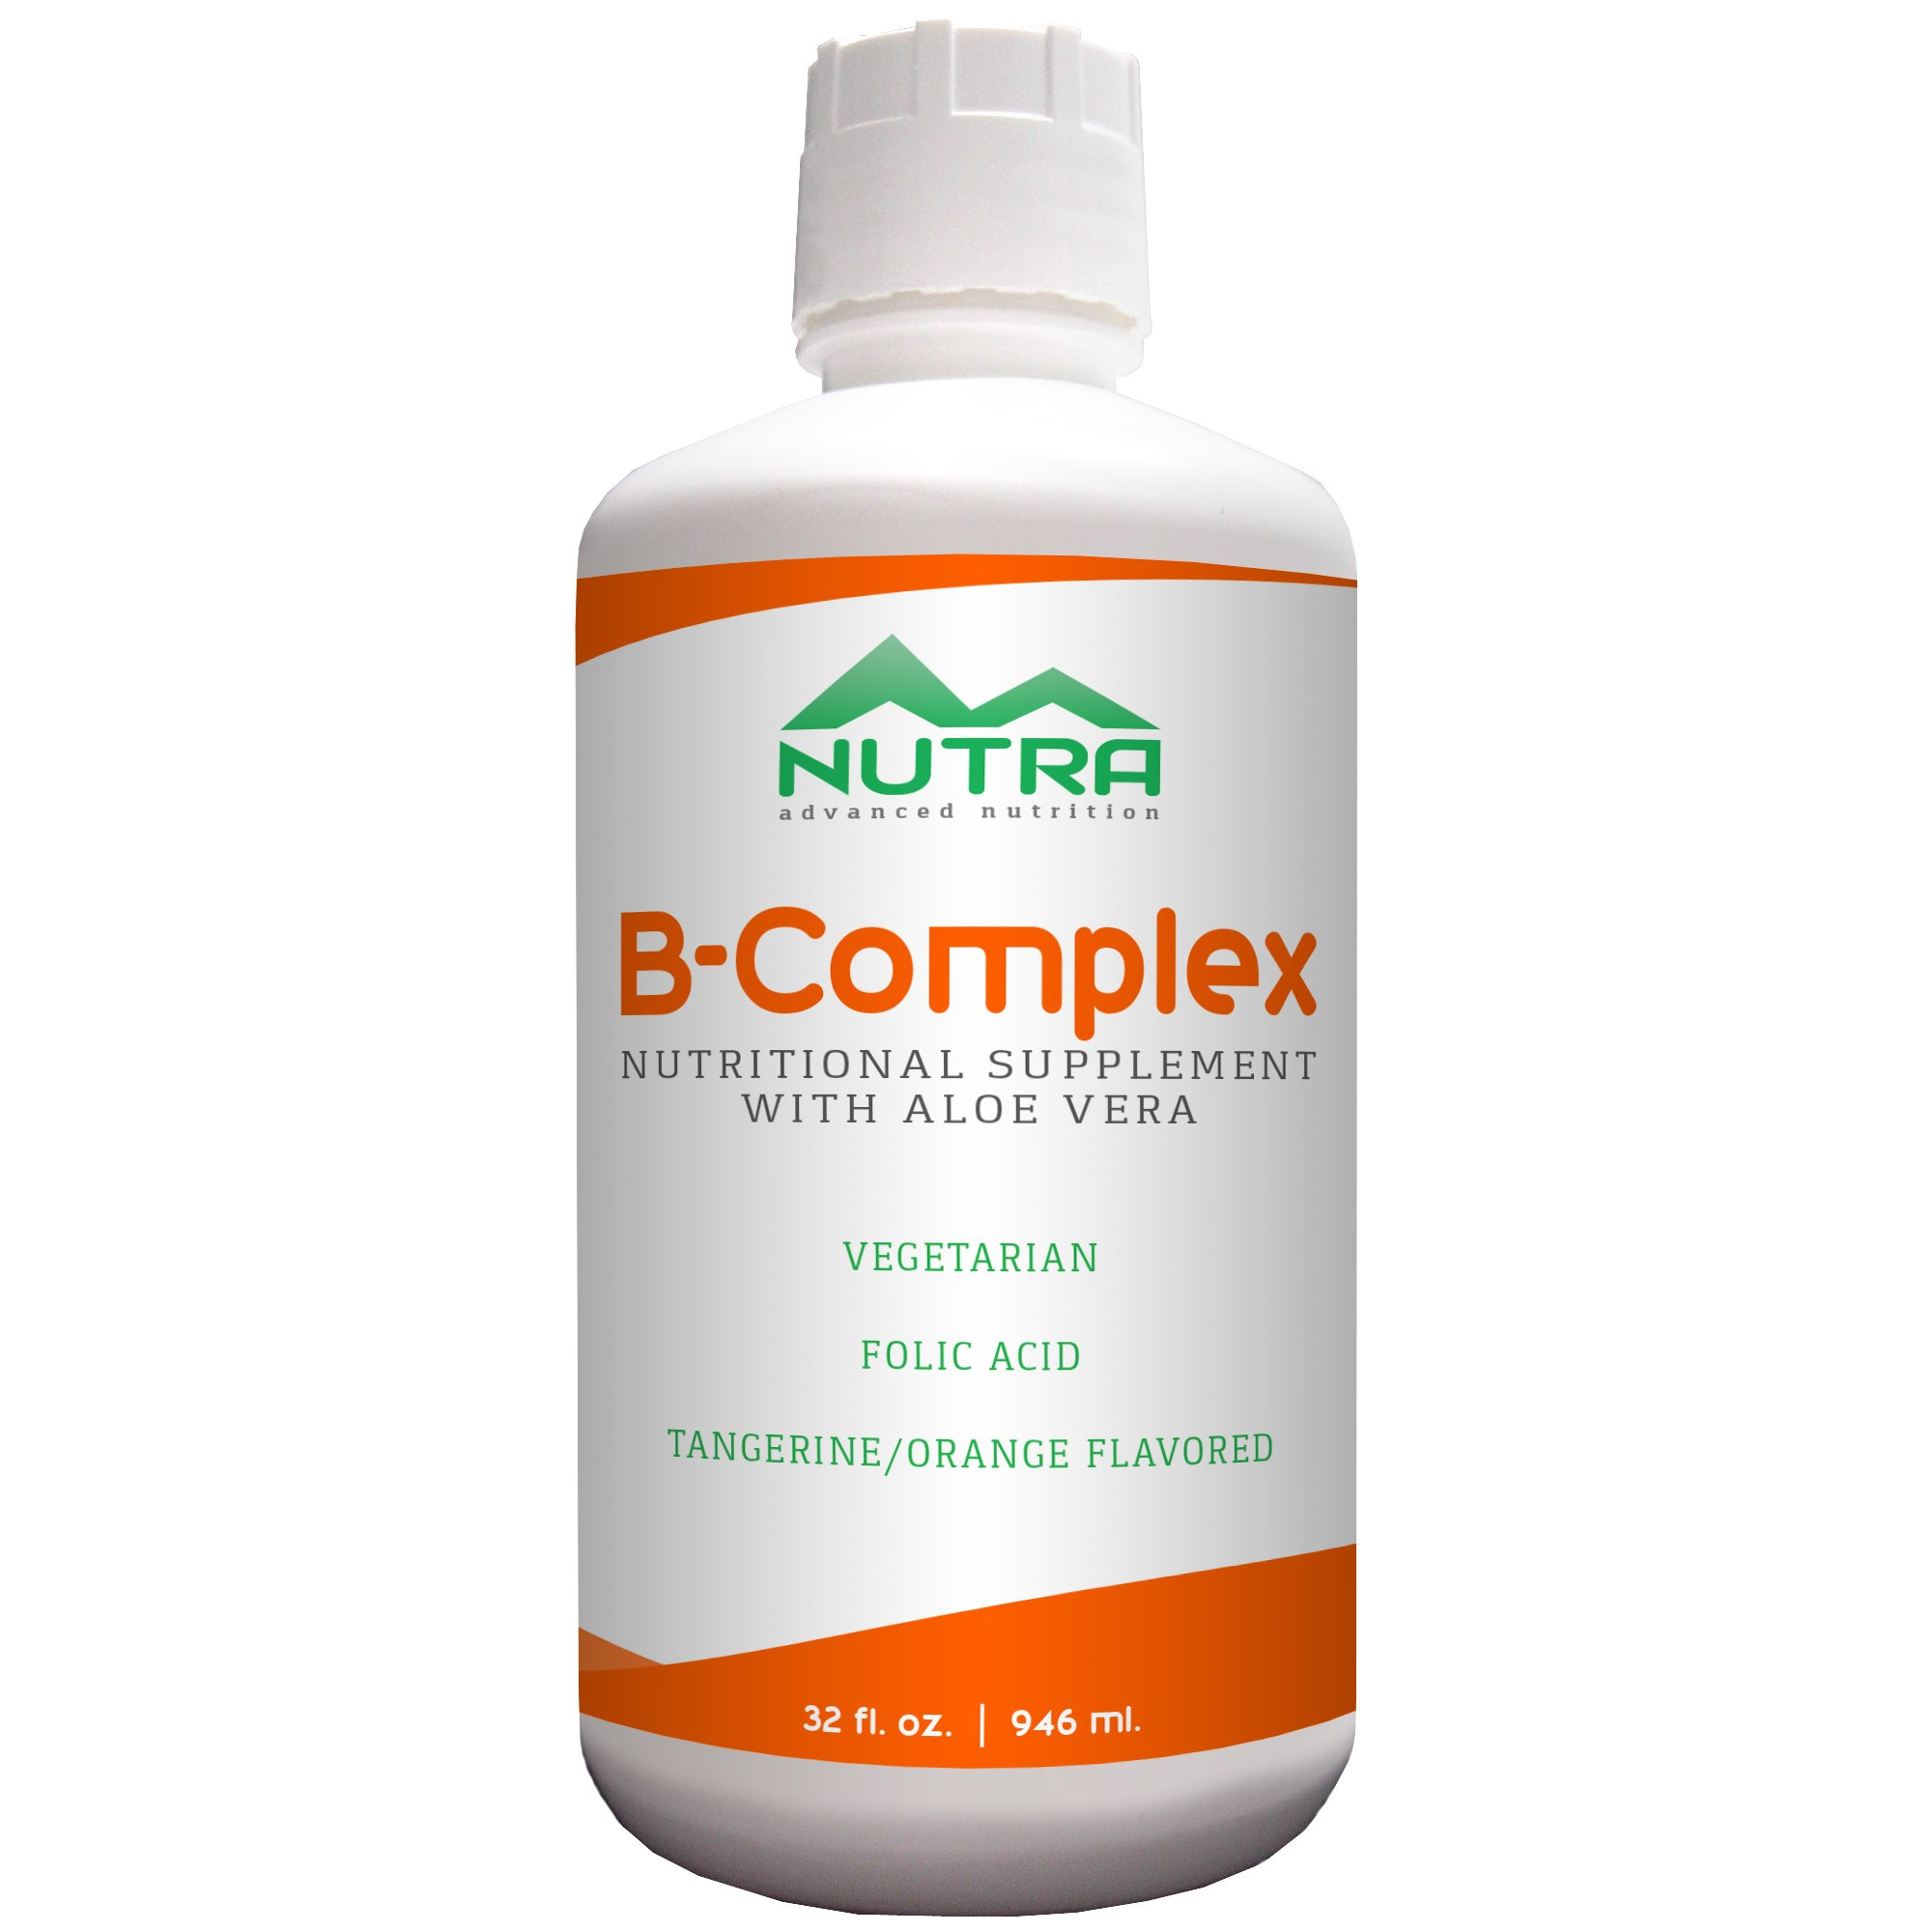 Private Label Vitamin B-Complex Supplement Manufacturer